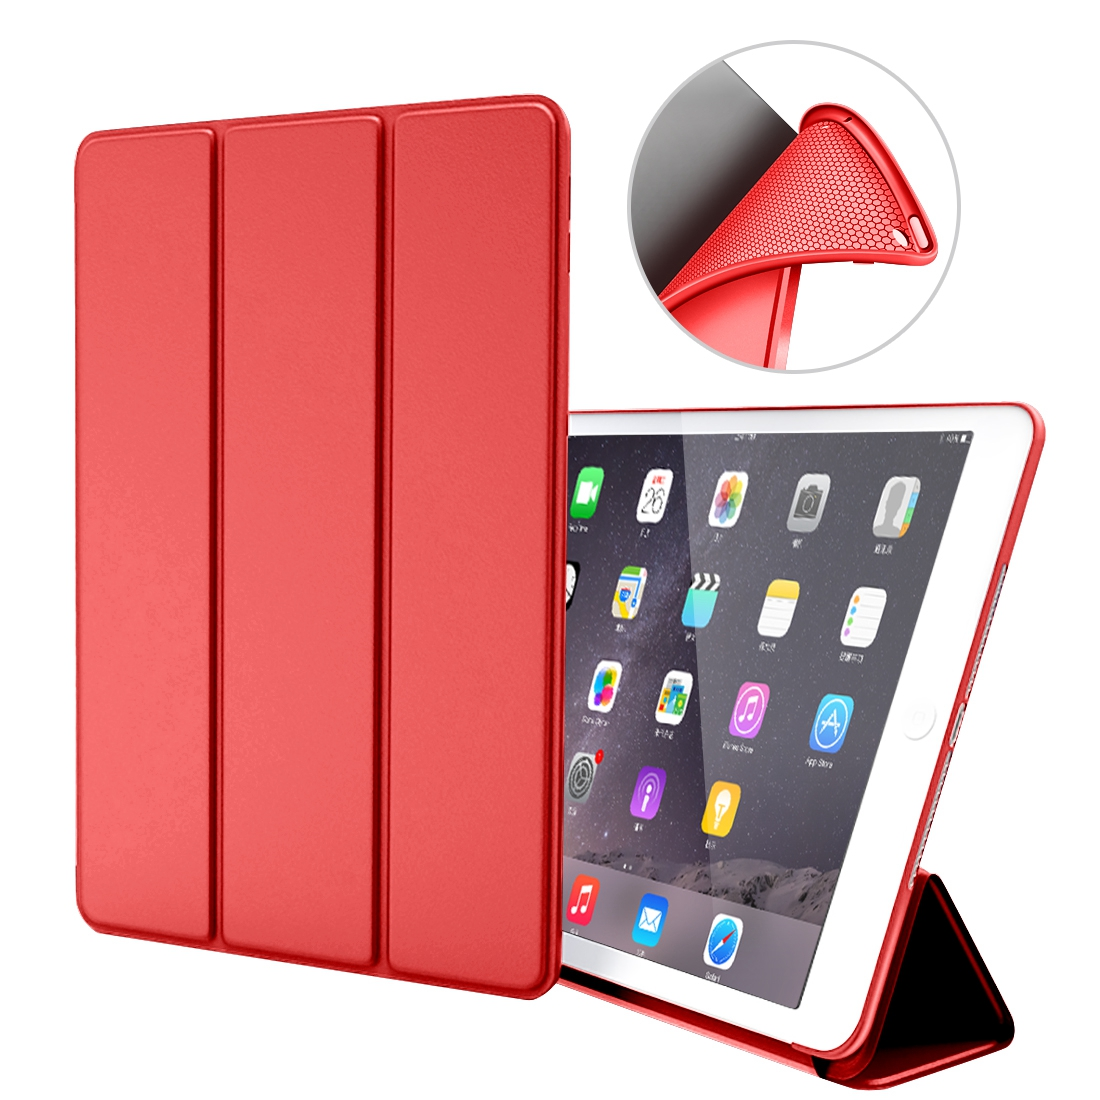 For iPad Mini 1 2 3 4 Smart Case Cover Soft TPU Silicone Back PU Leather Flip Stand the tablet Auto Sleep/wake for ipad 7.9 inch dhl ems ups free 3 folder folio stand pu leather soft tpu silicon flip auto sleep cover case for apple ipad pro 9 7 tablet